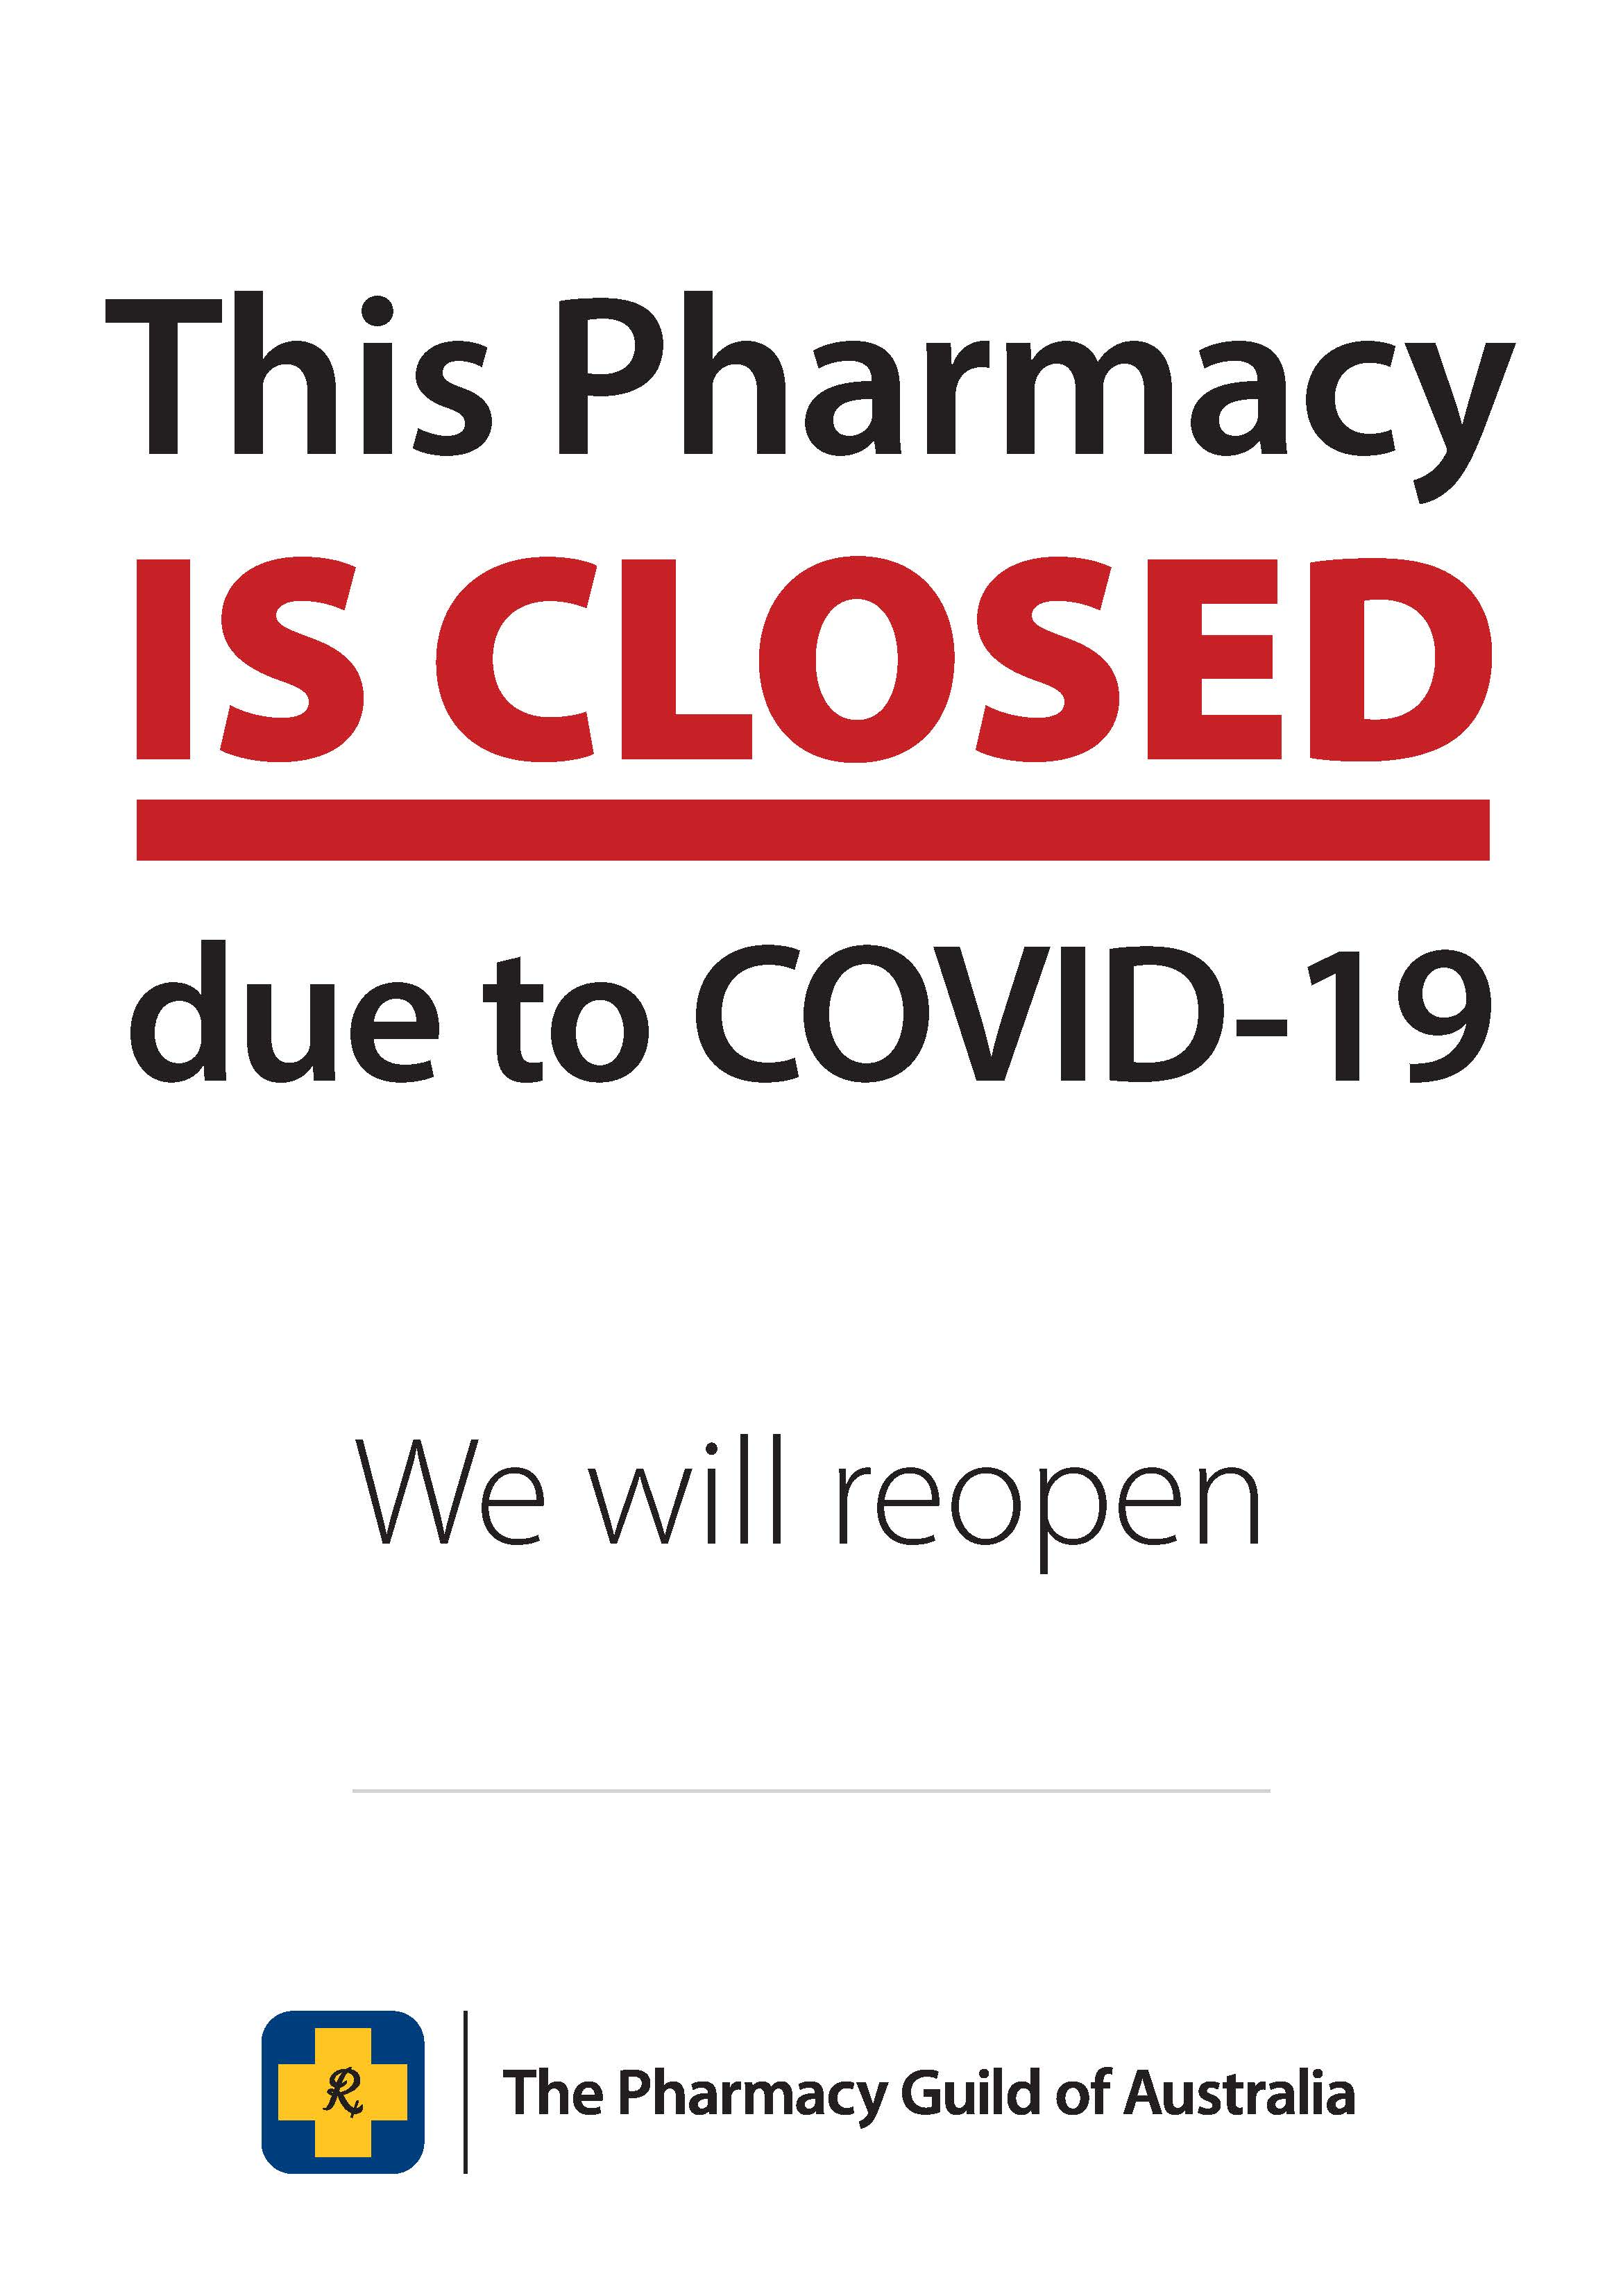 COVID-19 Poster 7 - Pharmacy Closed Will Reopen (inhouse)